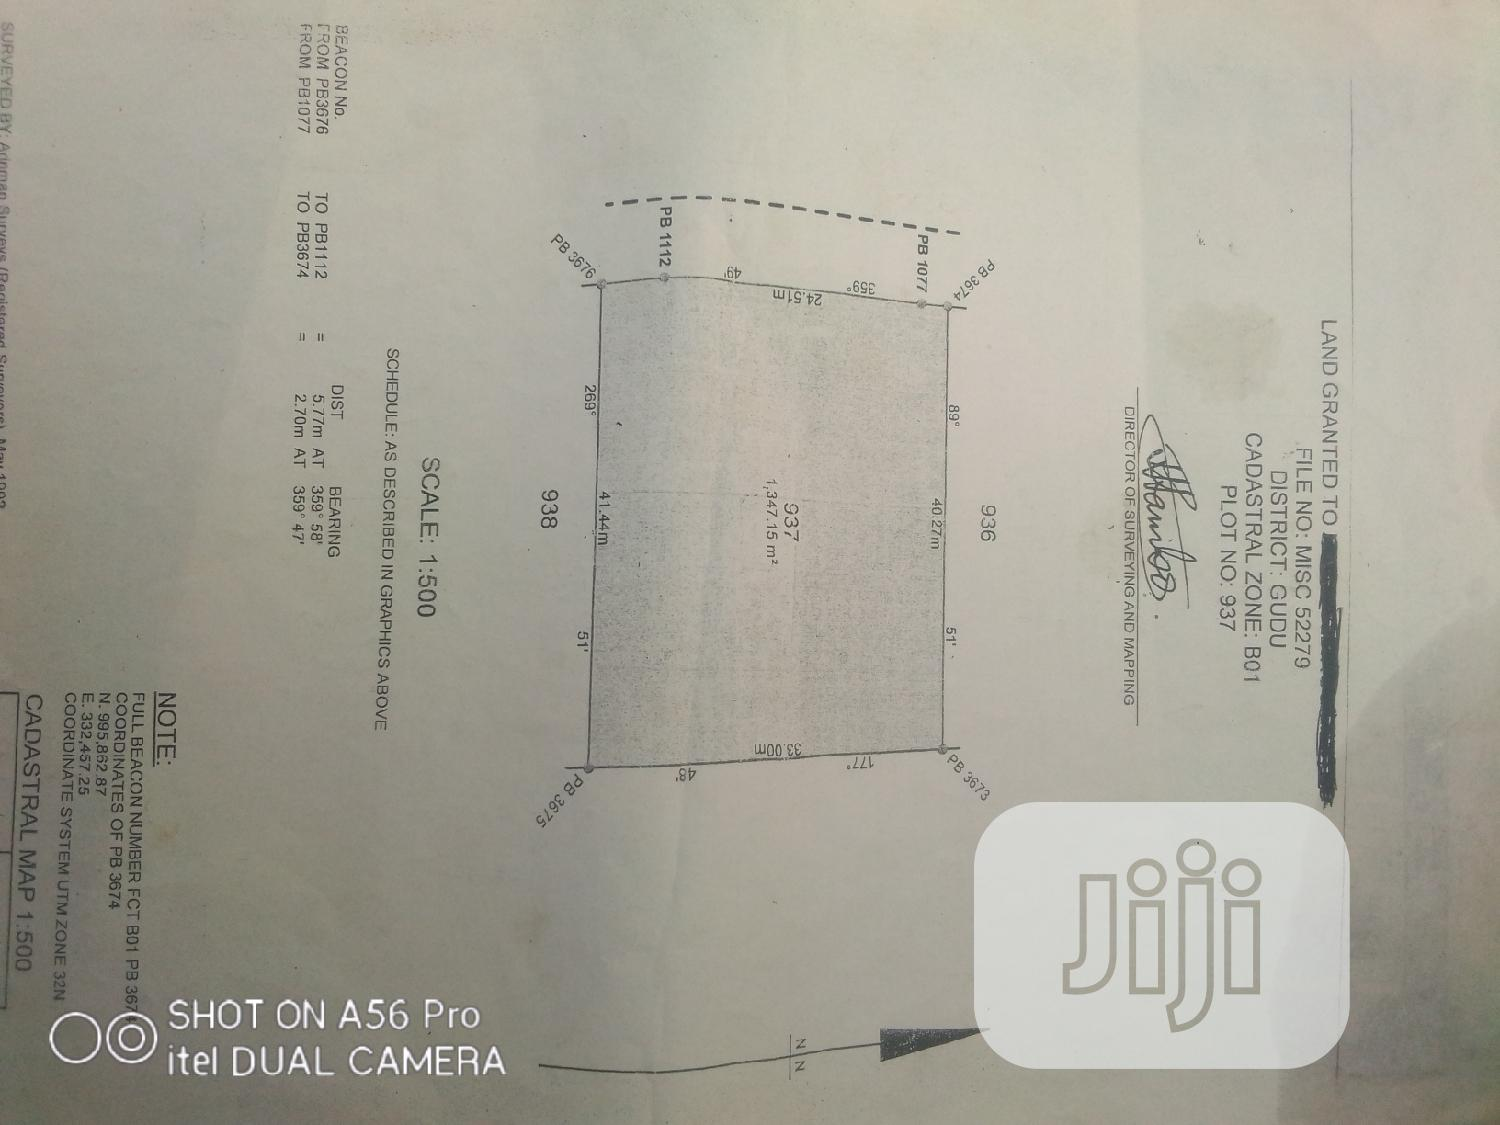 Archive: Commercial Land for Sale.